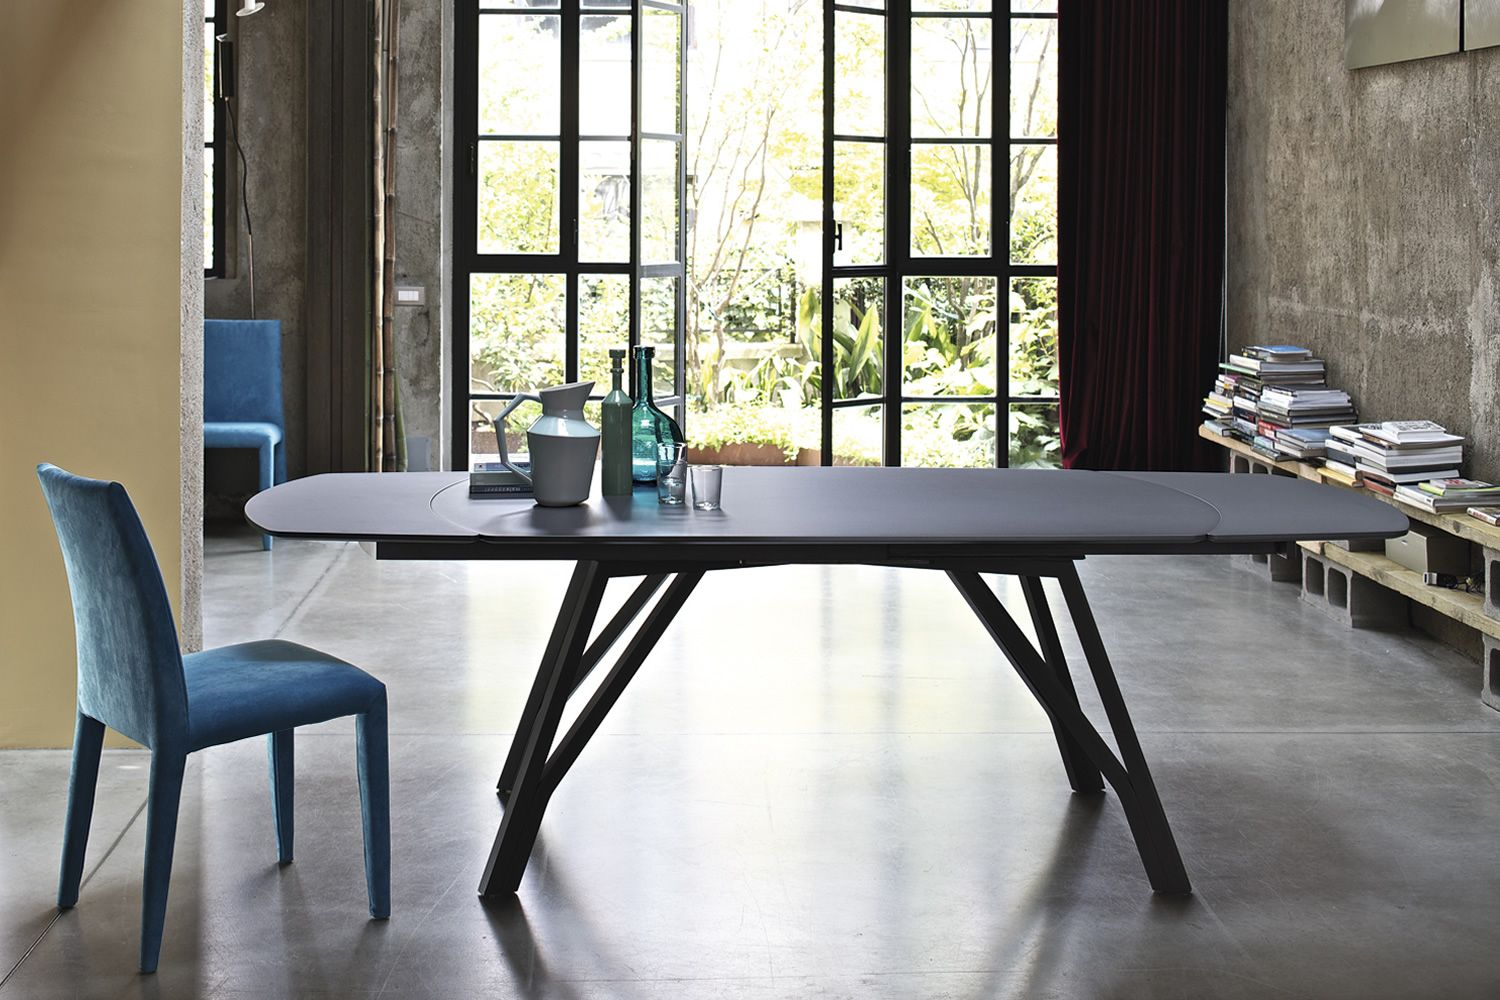 Designer table in anthracite grey lacquered steel and anthracite grey lacquered wood top